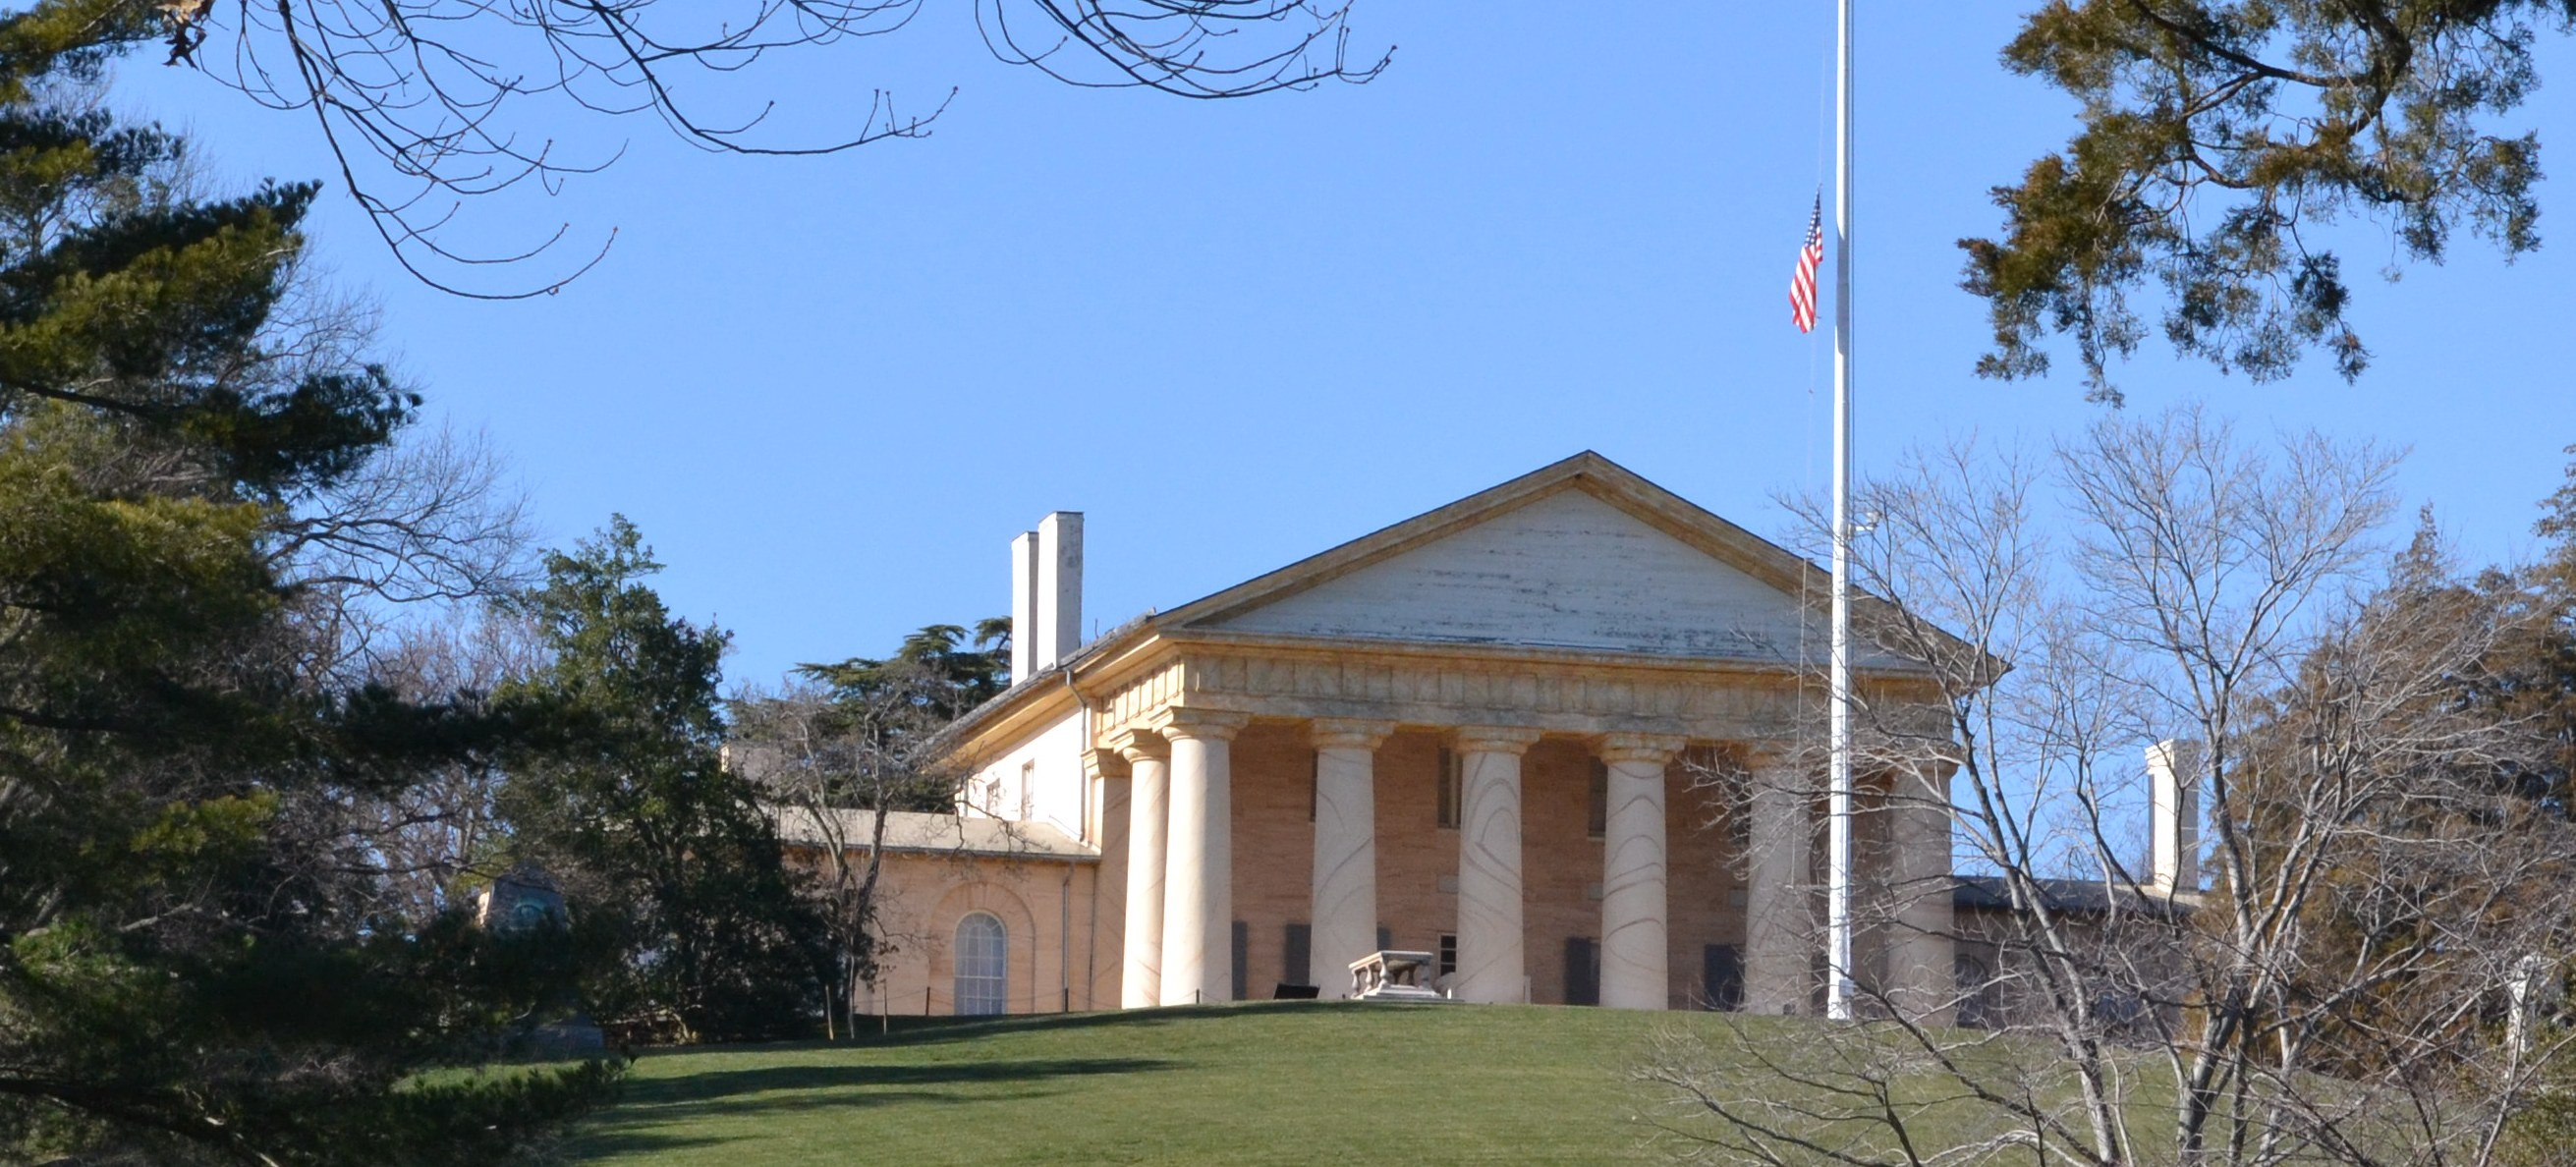 Arlington House is a neoclassical mansion, its most prominent feature being the large columns. It overlooks part of what is now Arlington National Cemetery.